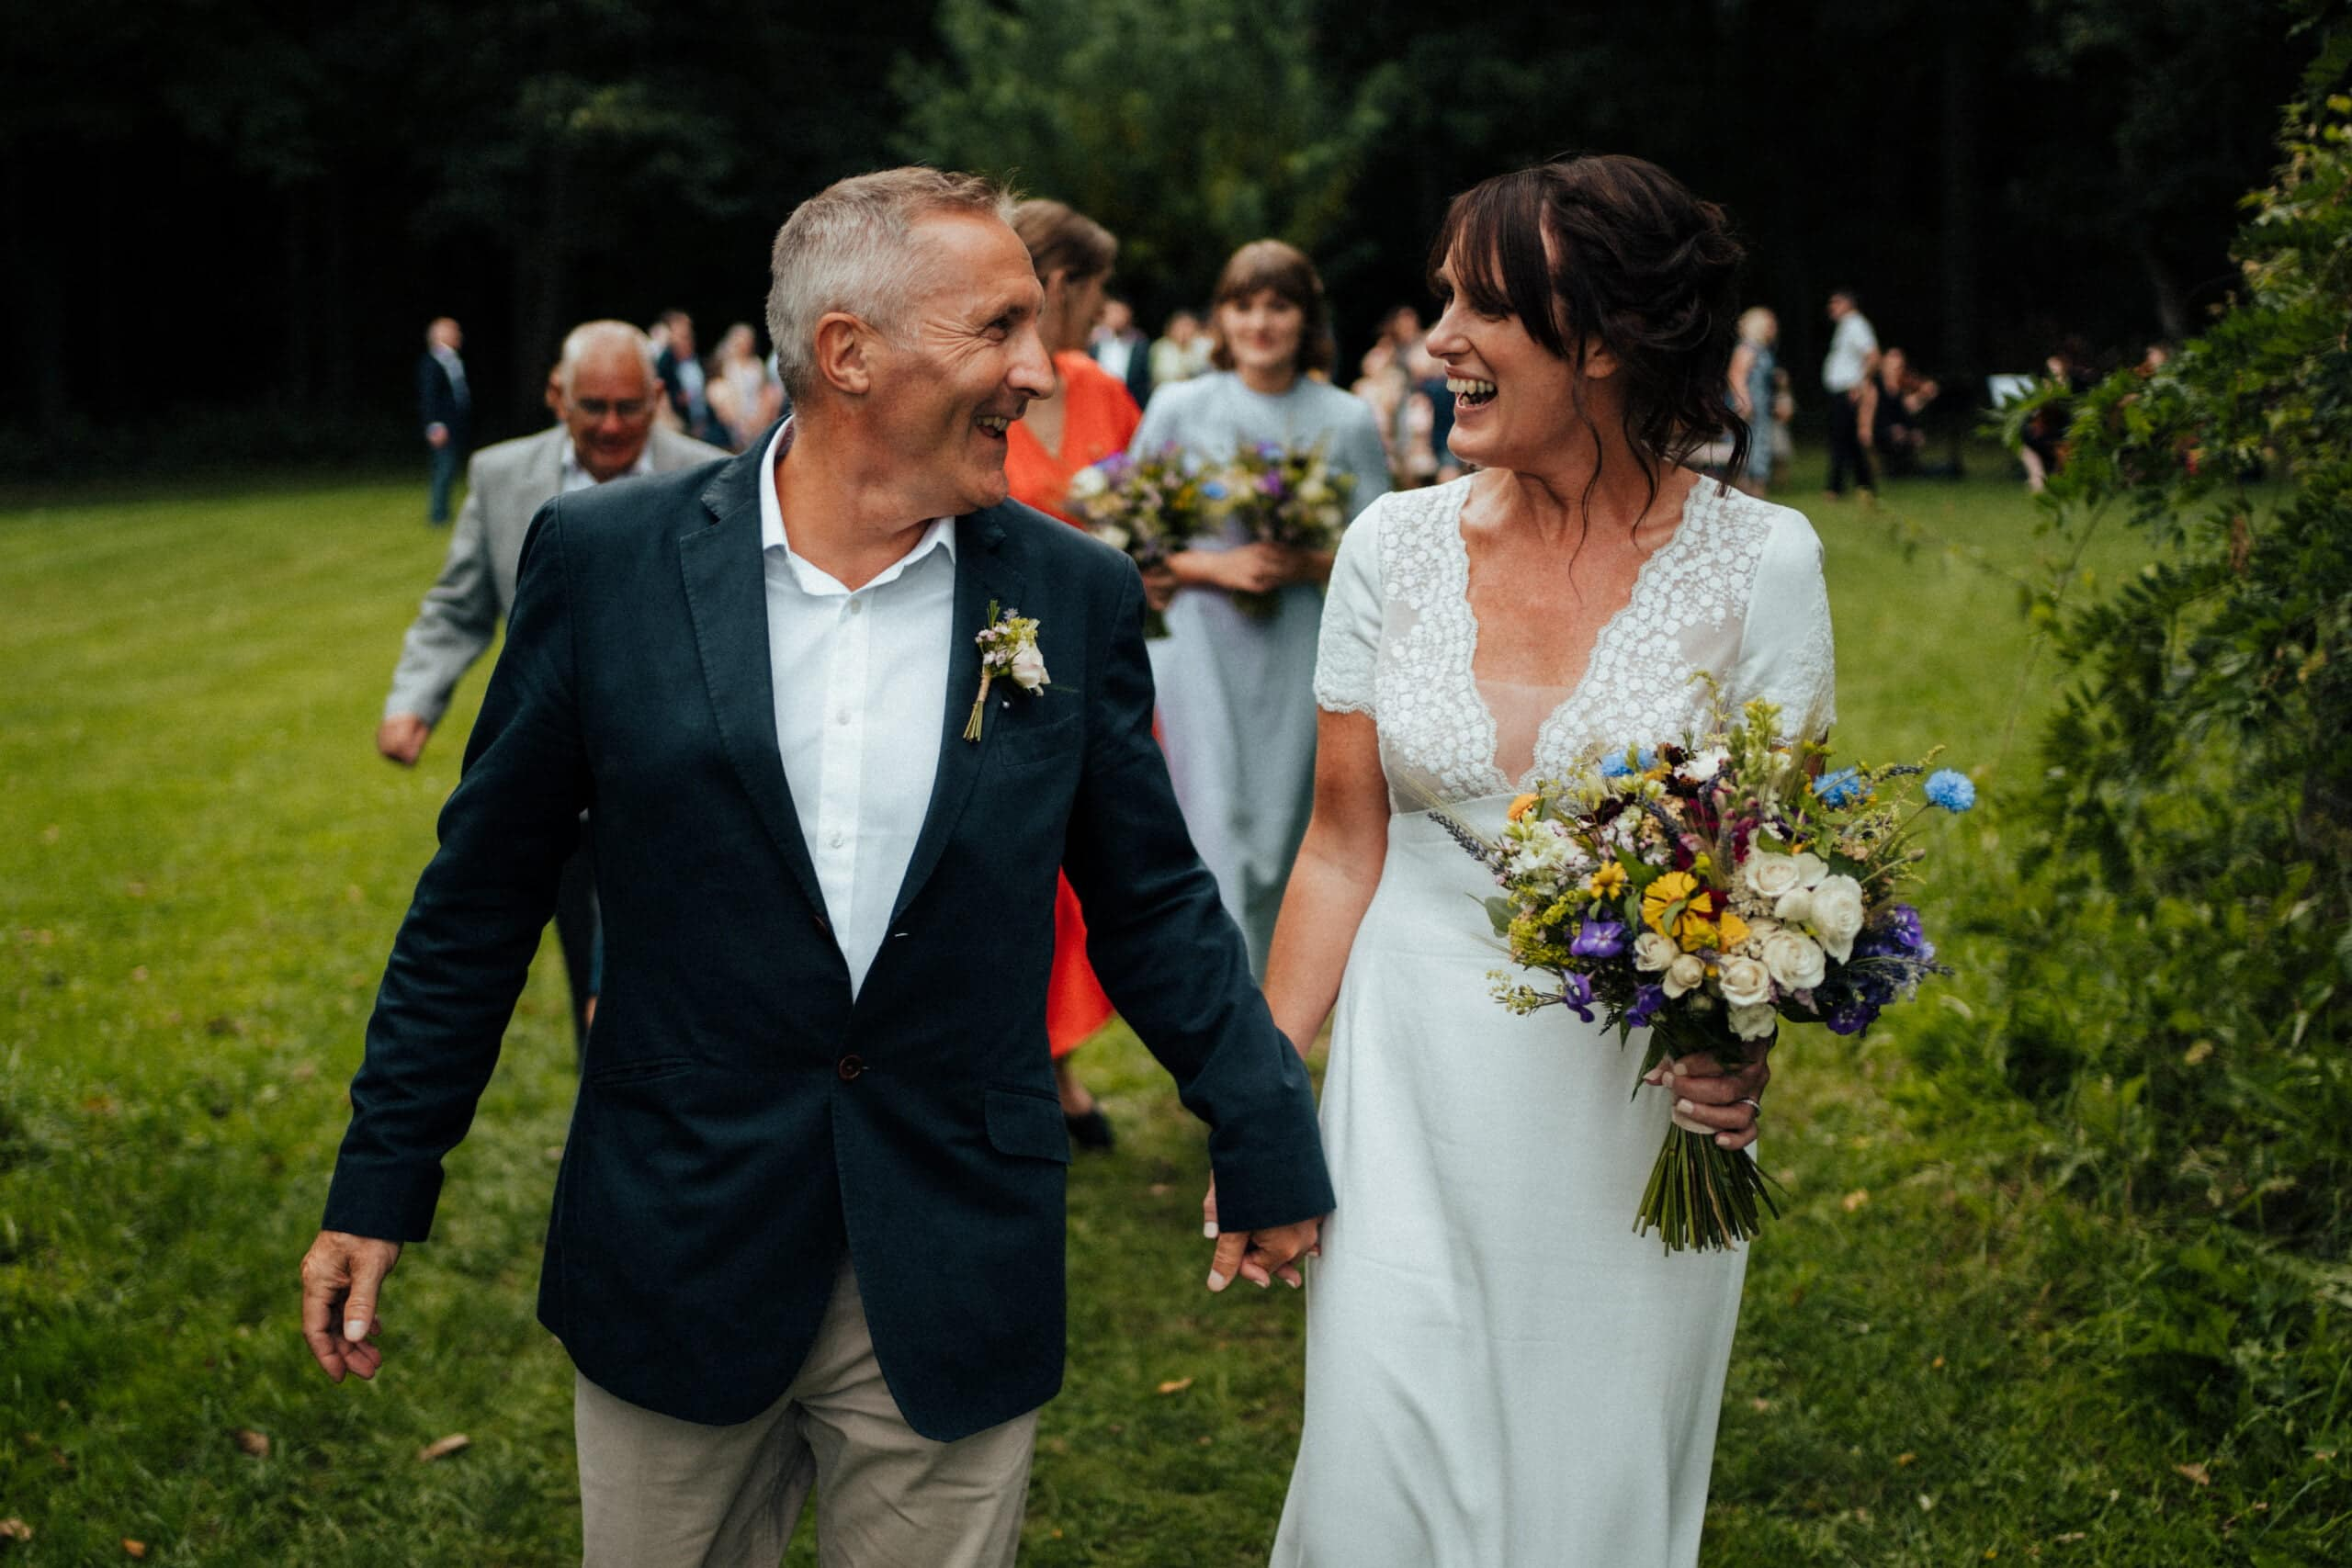 Bride and groom with wildflower bouquet at Chaucer Barn wedding ceremony